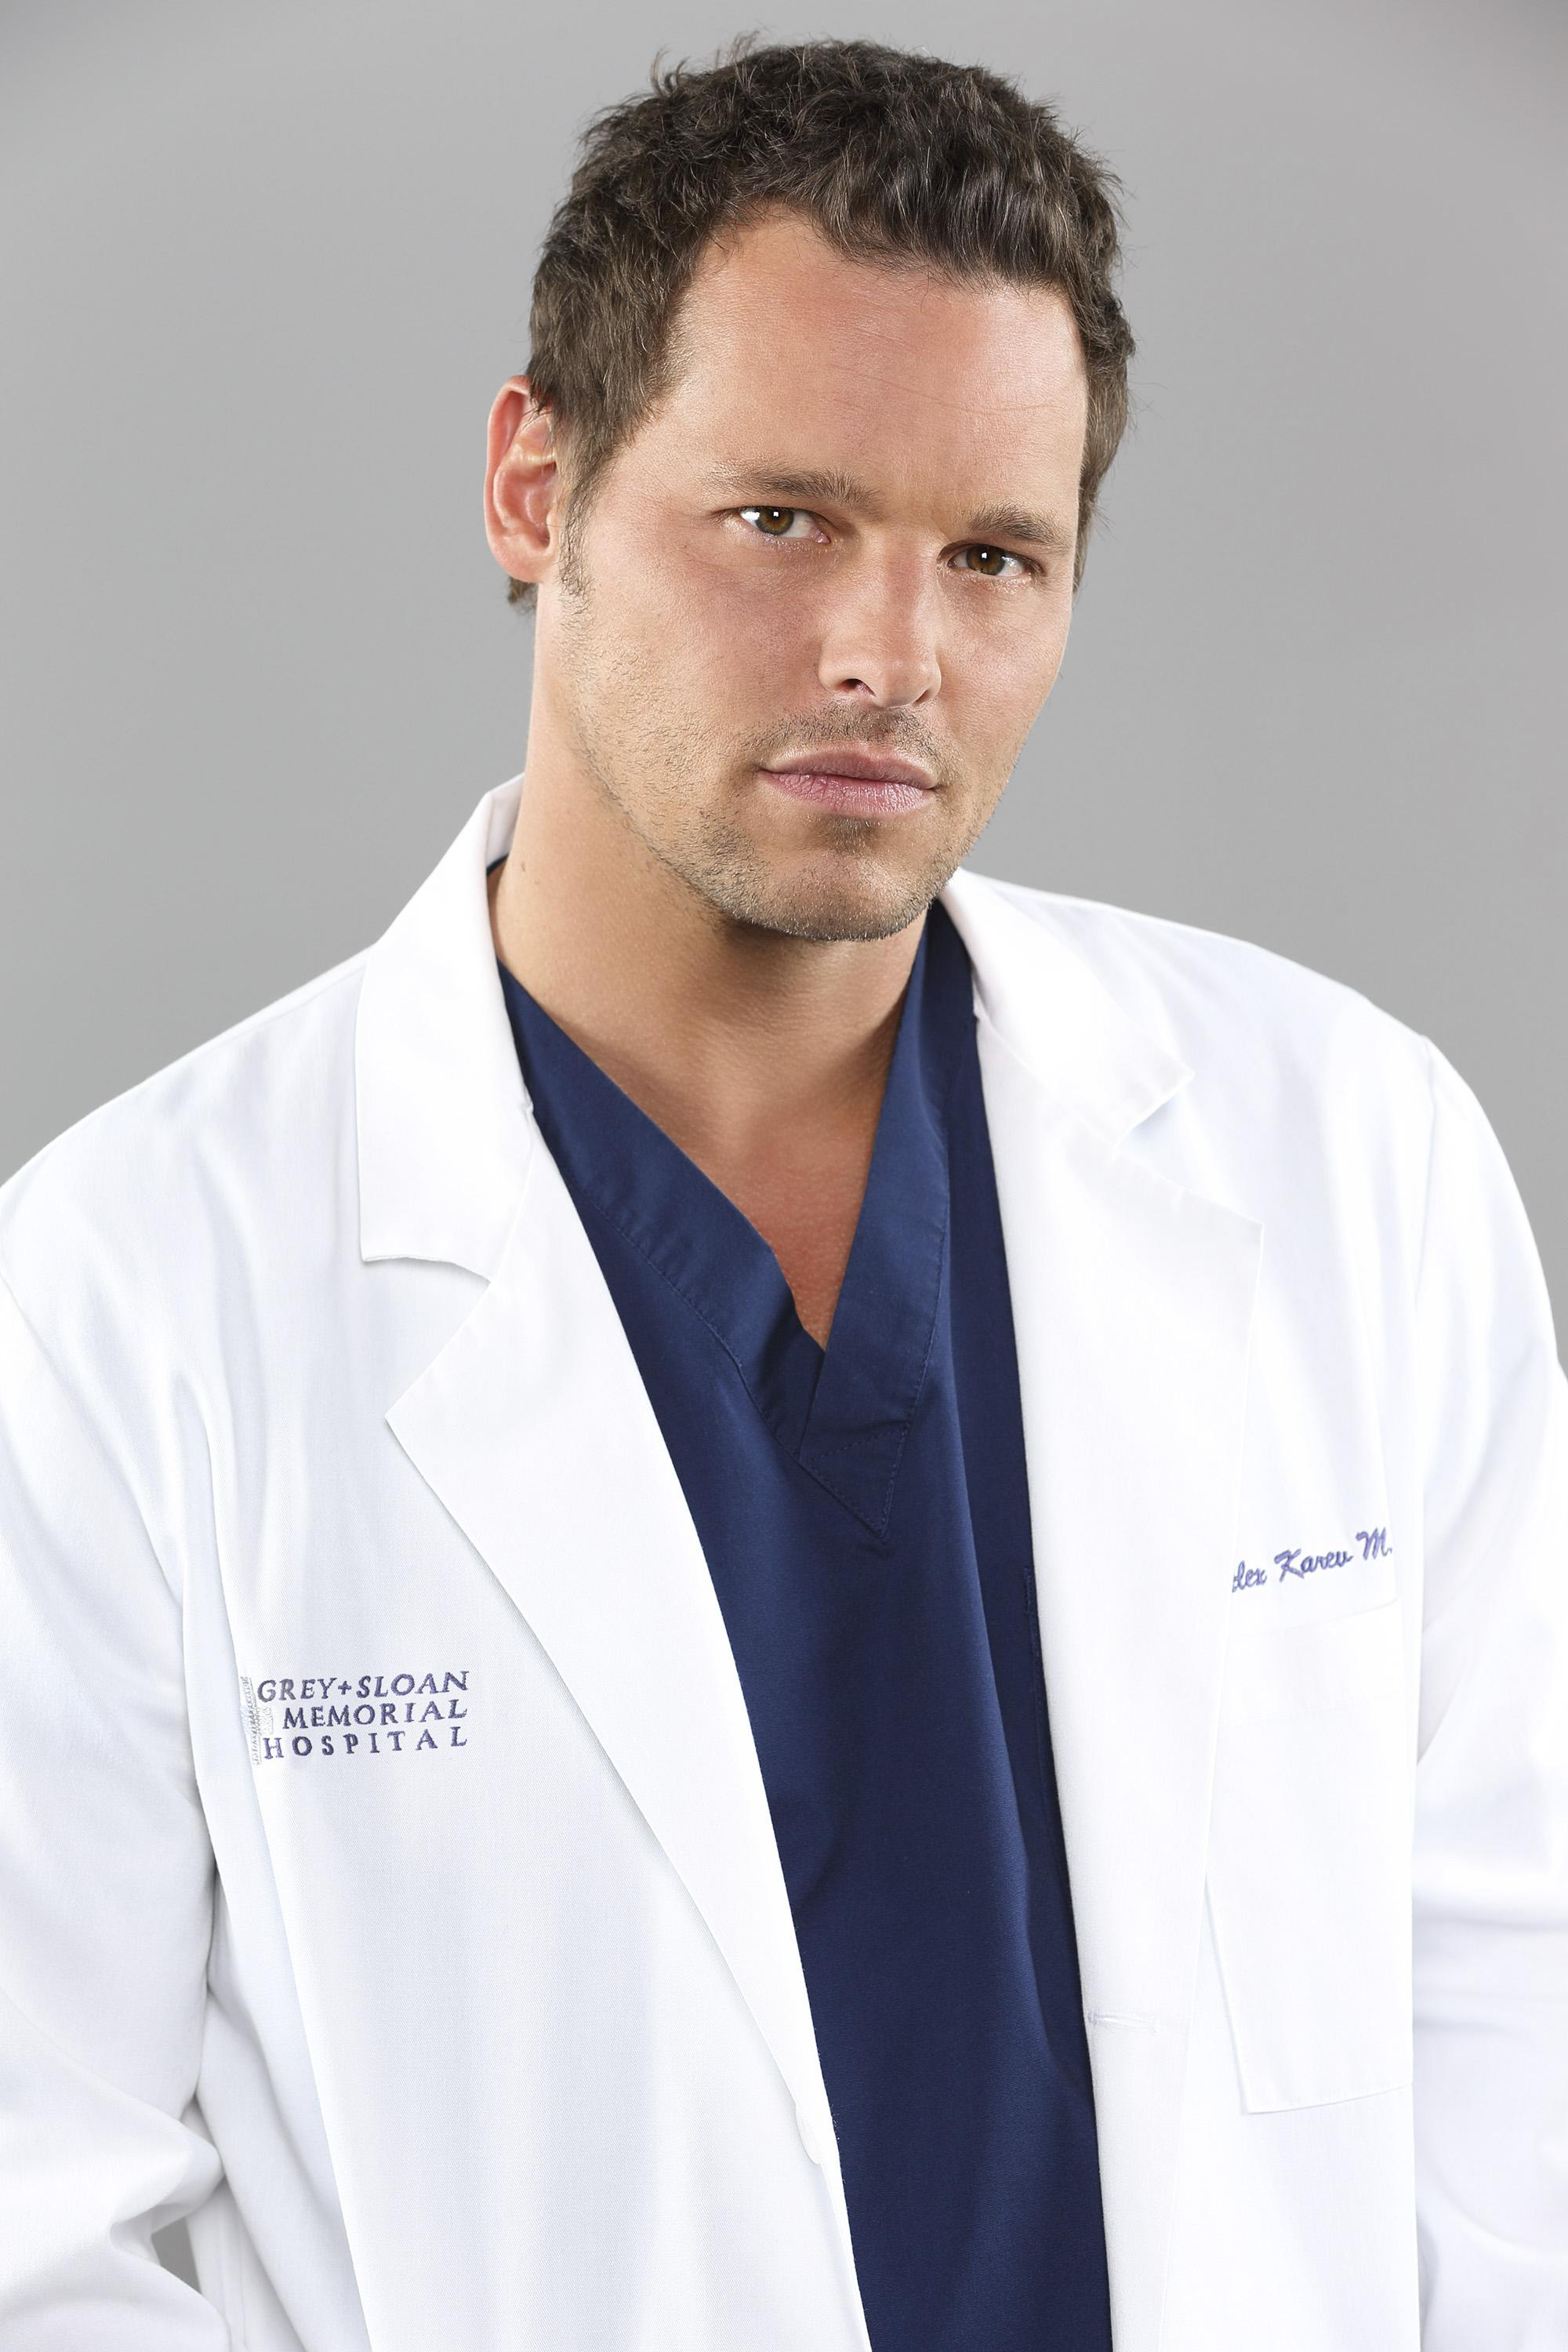 justin chambers onlinejustin chambers wife, justin chambers 2016, justin chambers 2017, justin chambers jennifer lopez, justin chambers tumblr, justin chambers actor, justin chambers height, justin chambers and family, justin chambers interview, justin chambers and his twin brother, justin chambers online, justin chambers net worth, justin chambers instagram, justin chambers and ellen pompeo, justin chambers twin brother, justin chambers twitter oficial, justin chambers fan site, justin chambers wikipedia, justin chambers george michael, justin chambers gallery